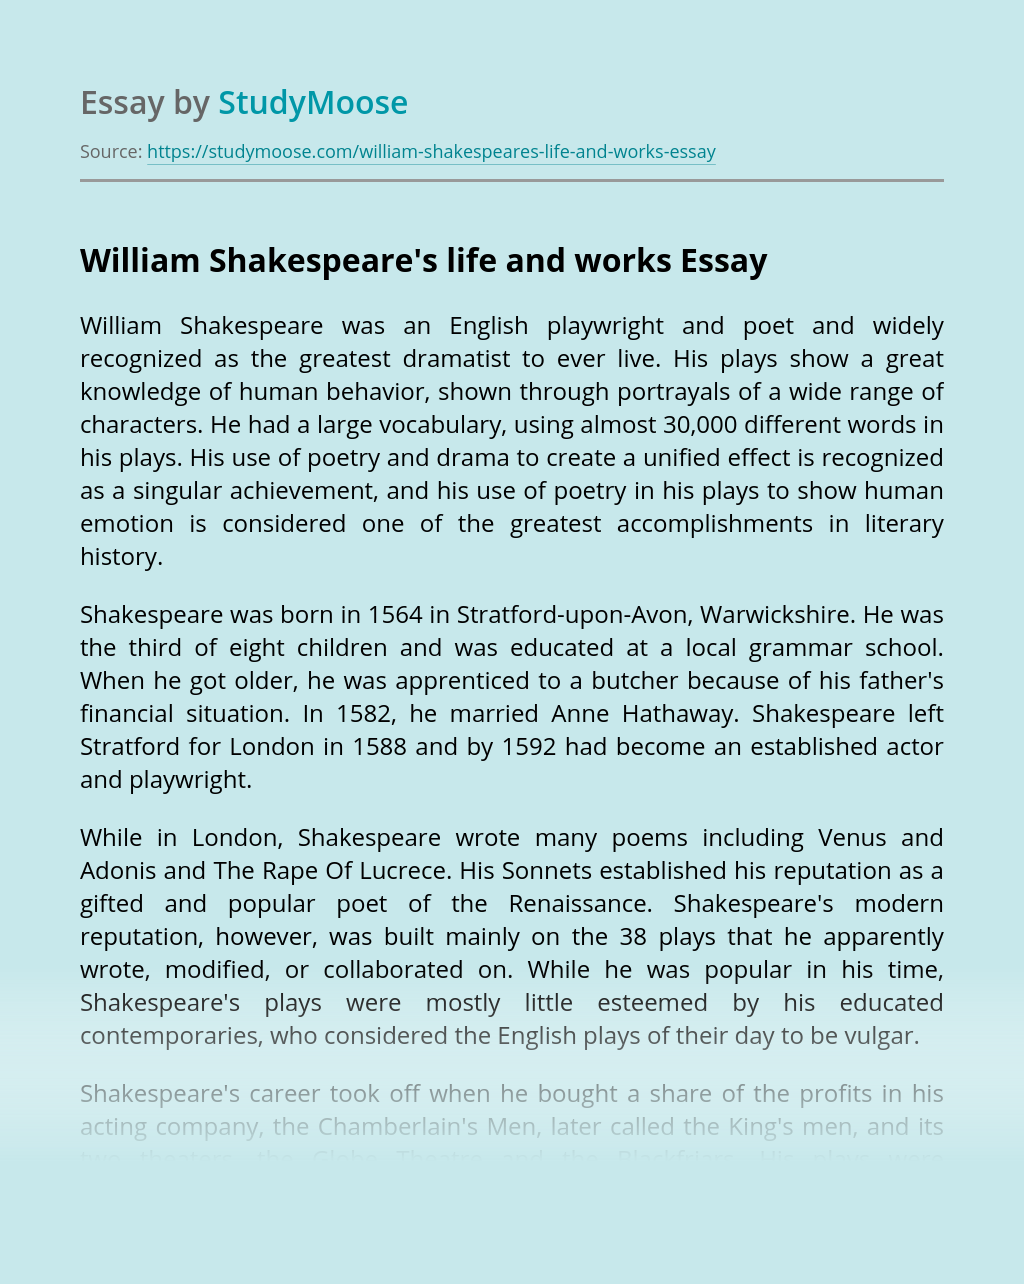 William Shakespeare's life and works